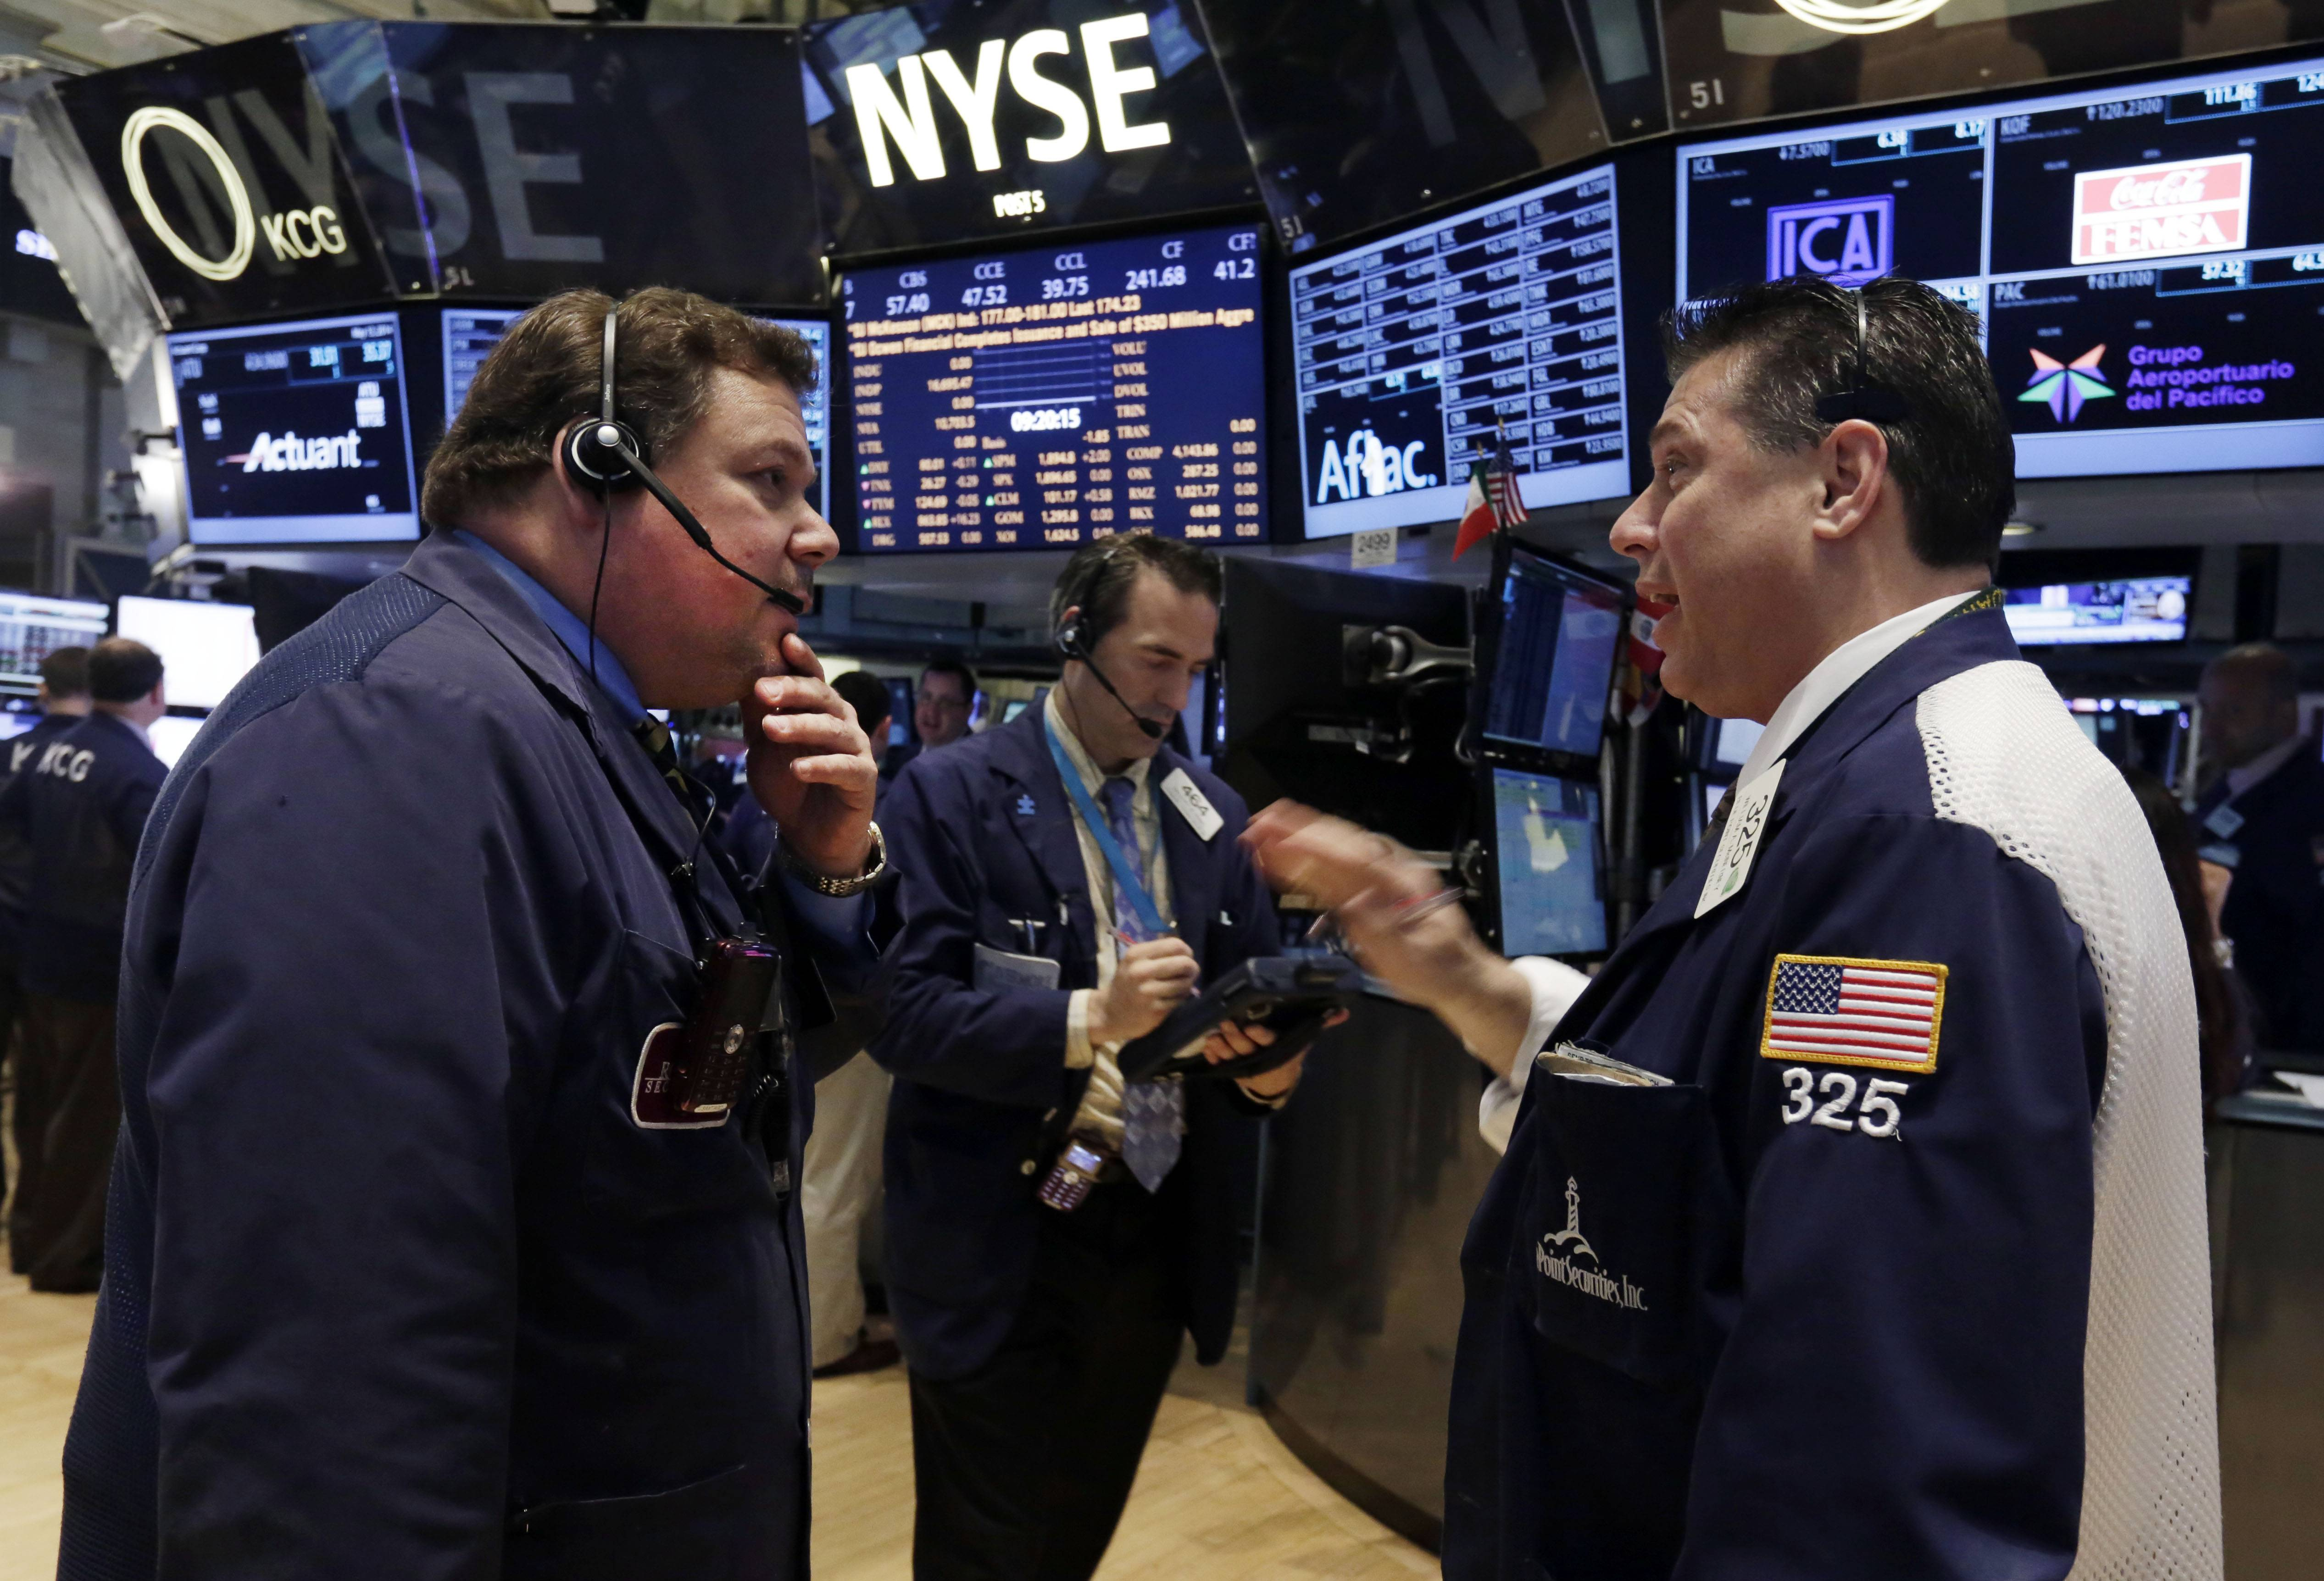 U.S. stocks fell Wednesday, sending benchmark indexes down from all-time highs, as investors resumed selling in small-cap and Internet shares.